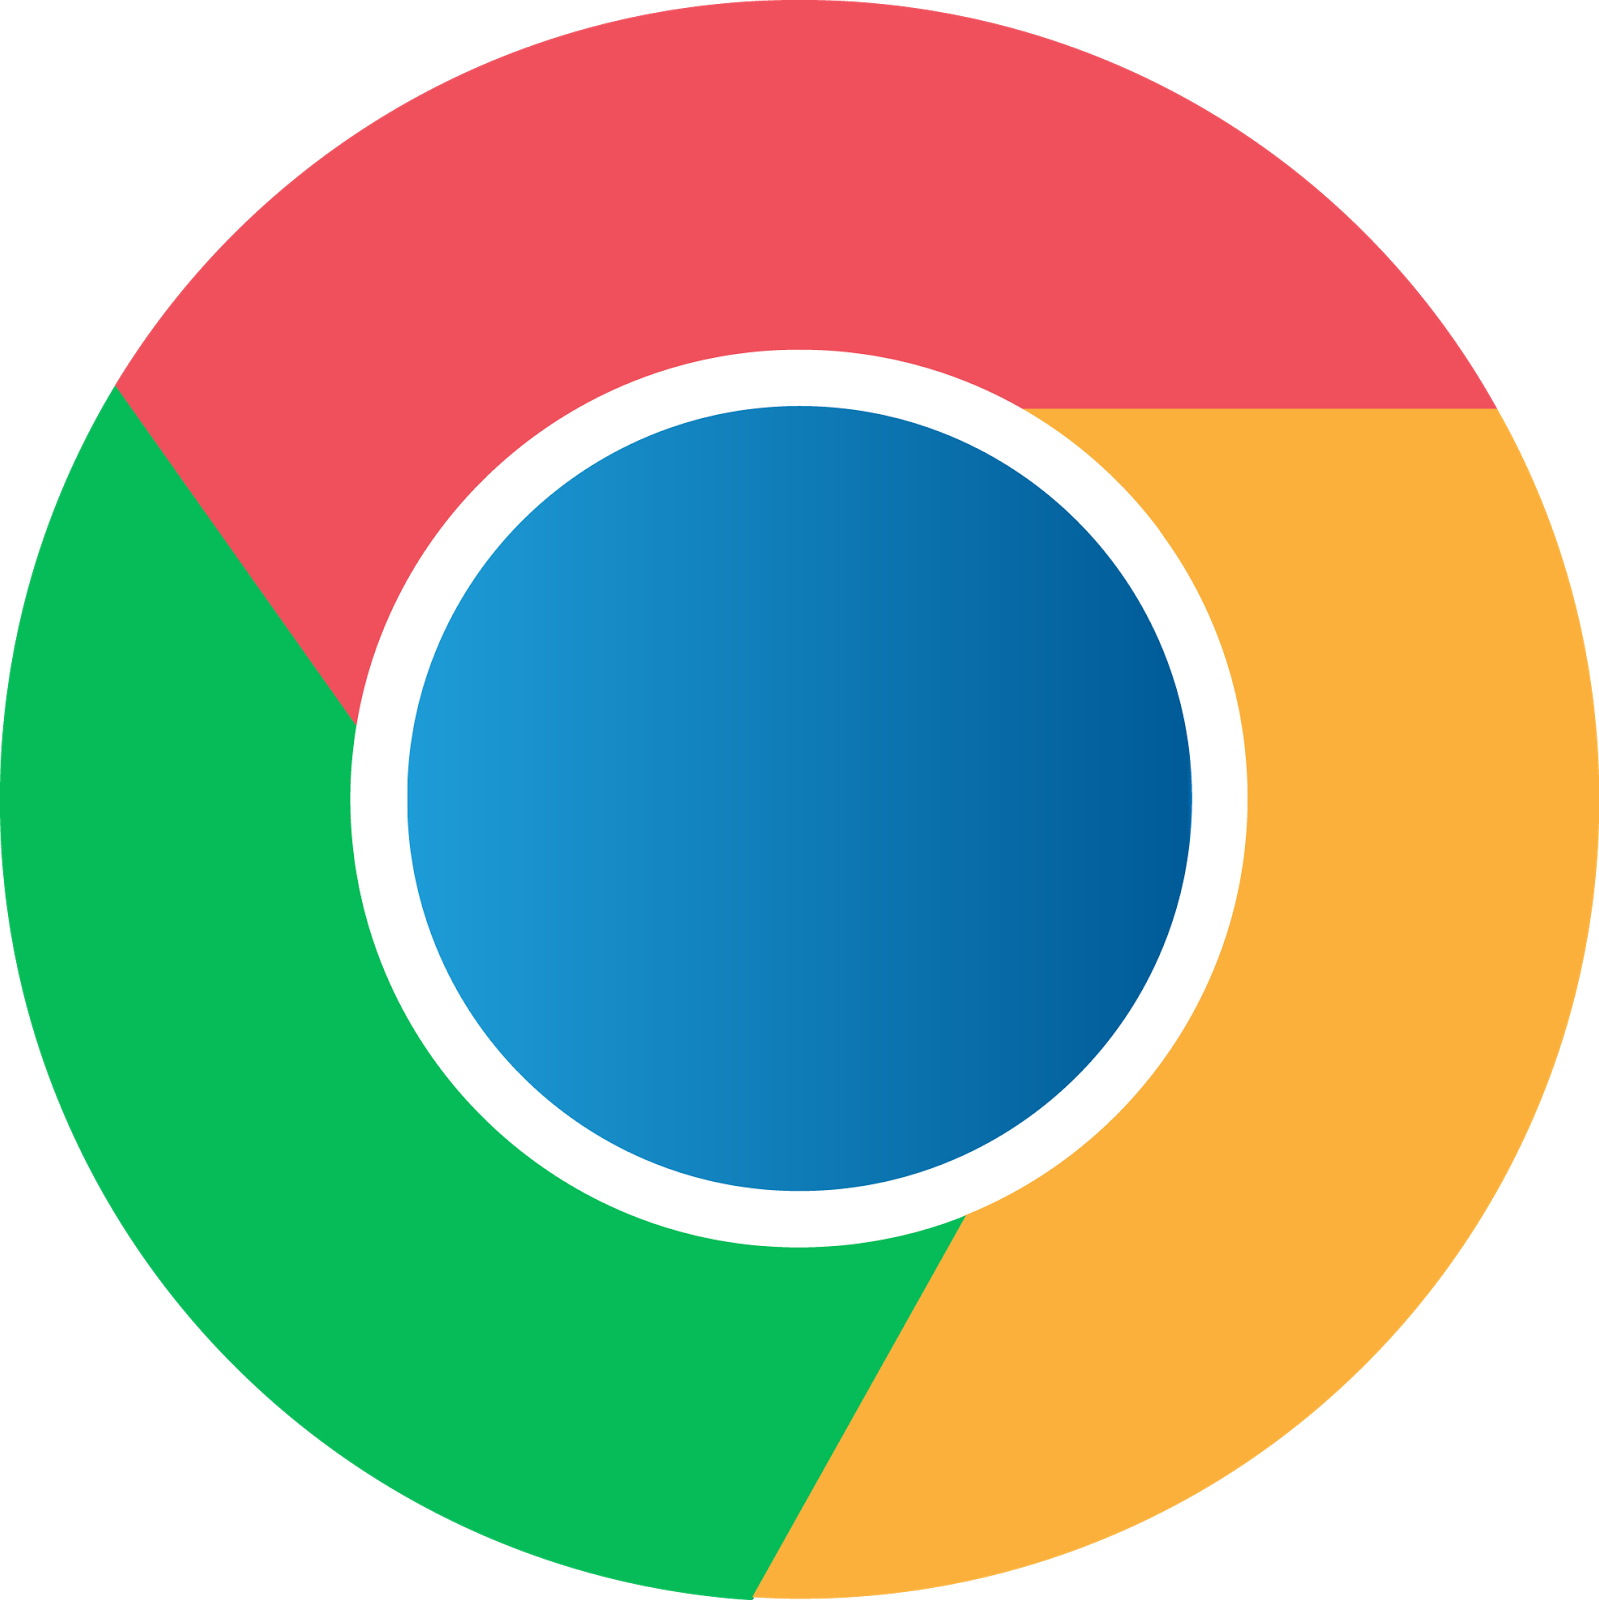 chrome logo png images #4804